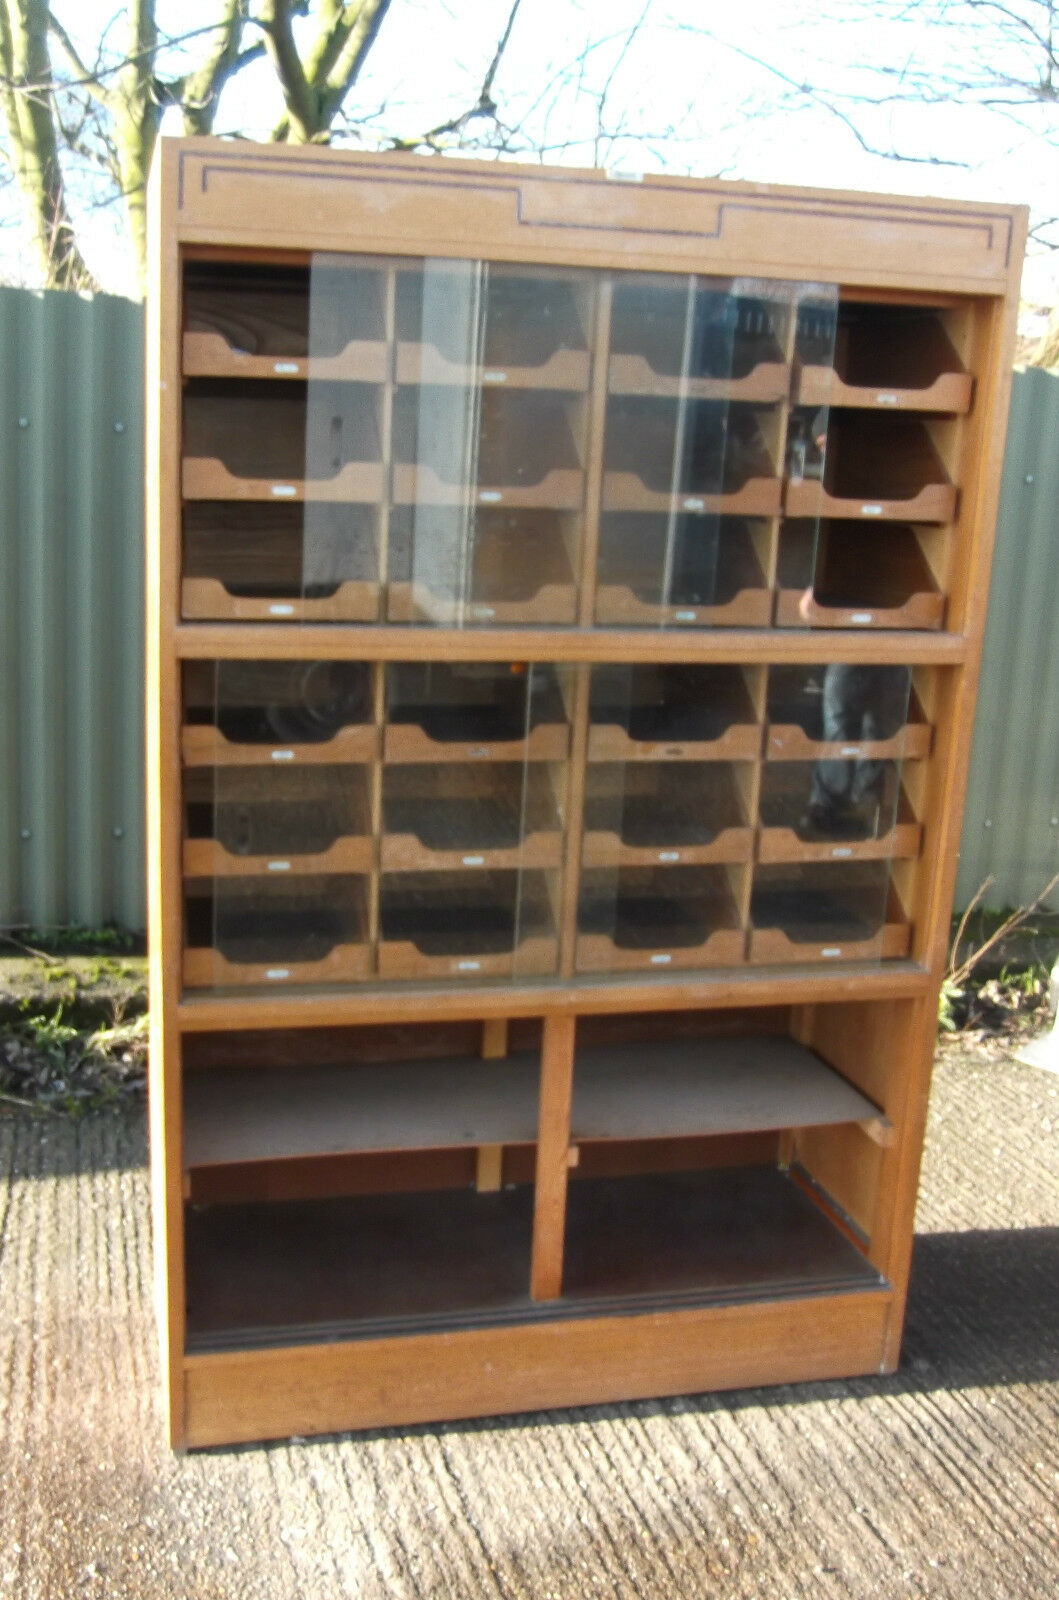 Superb 24-Drawer Haberdashery Shop Display Cabinet-2 Man Delivery Available